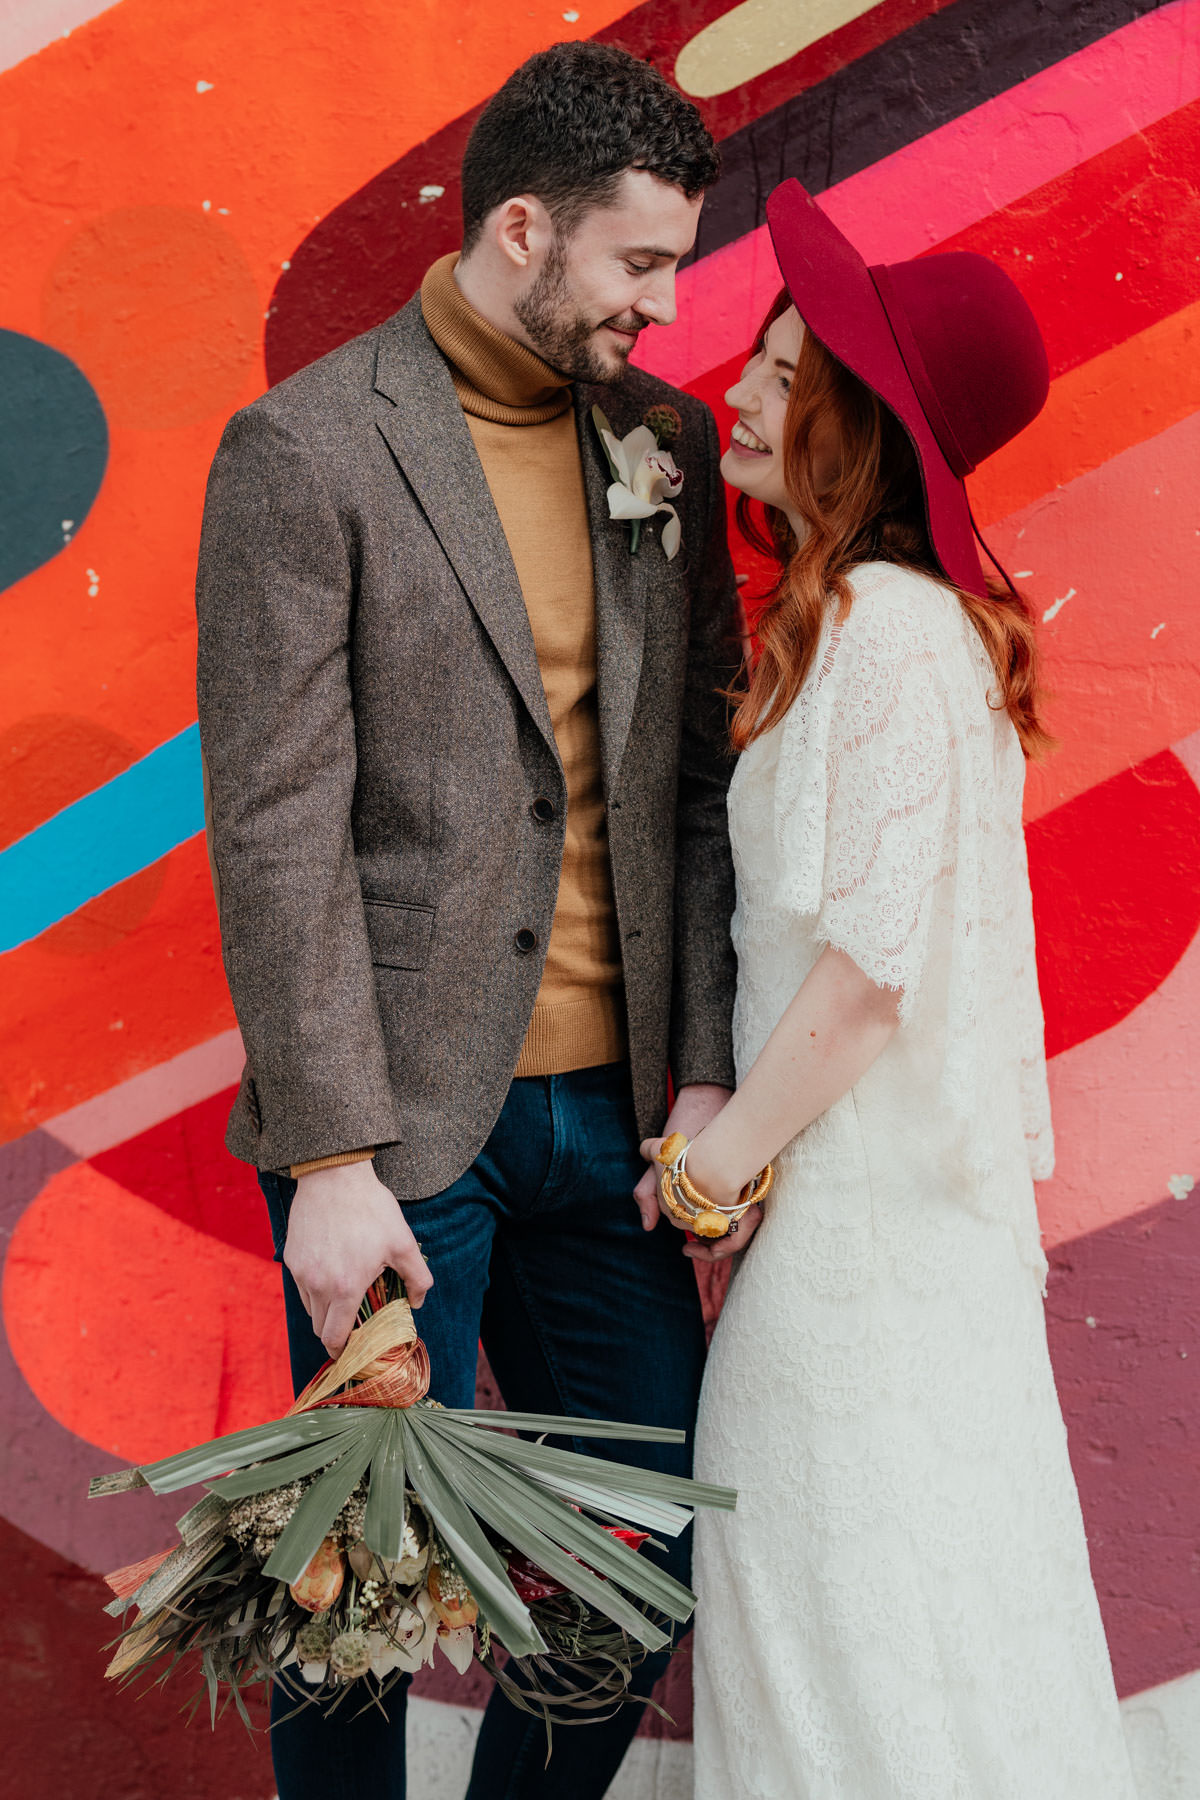 Industrial Meets Boho Wedding Inspiration: Cool couple portrait with graffiti background